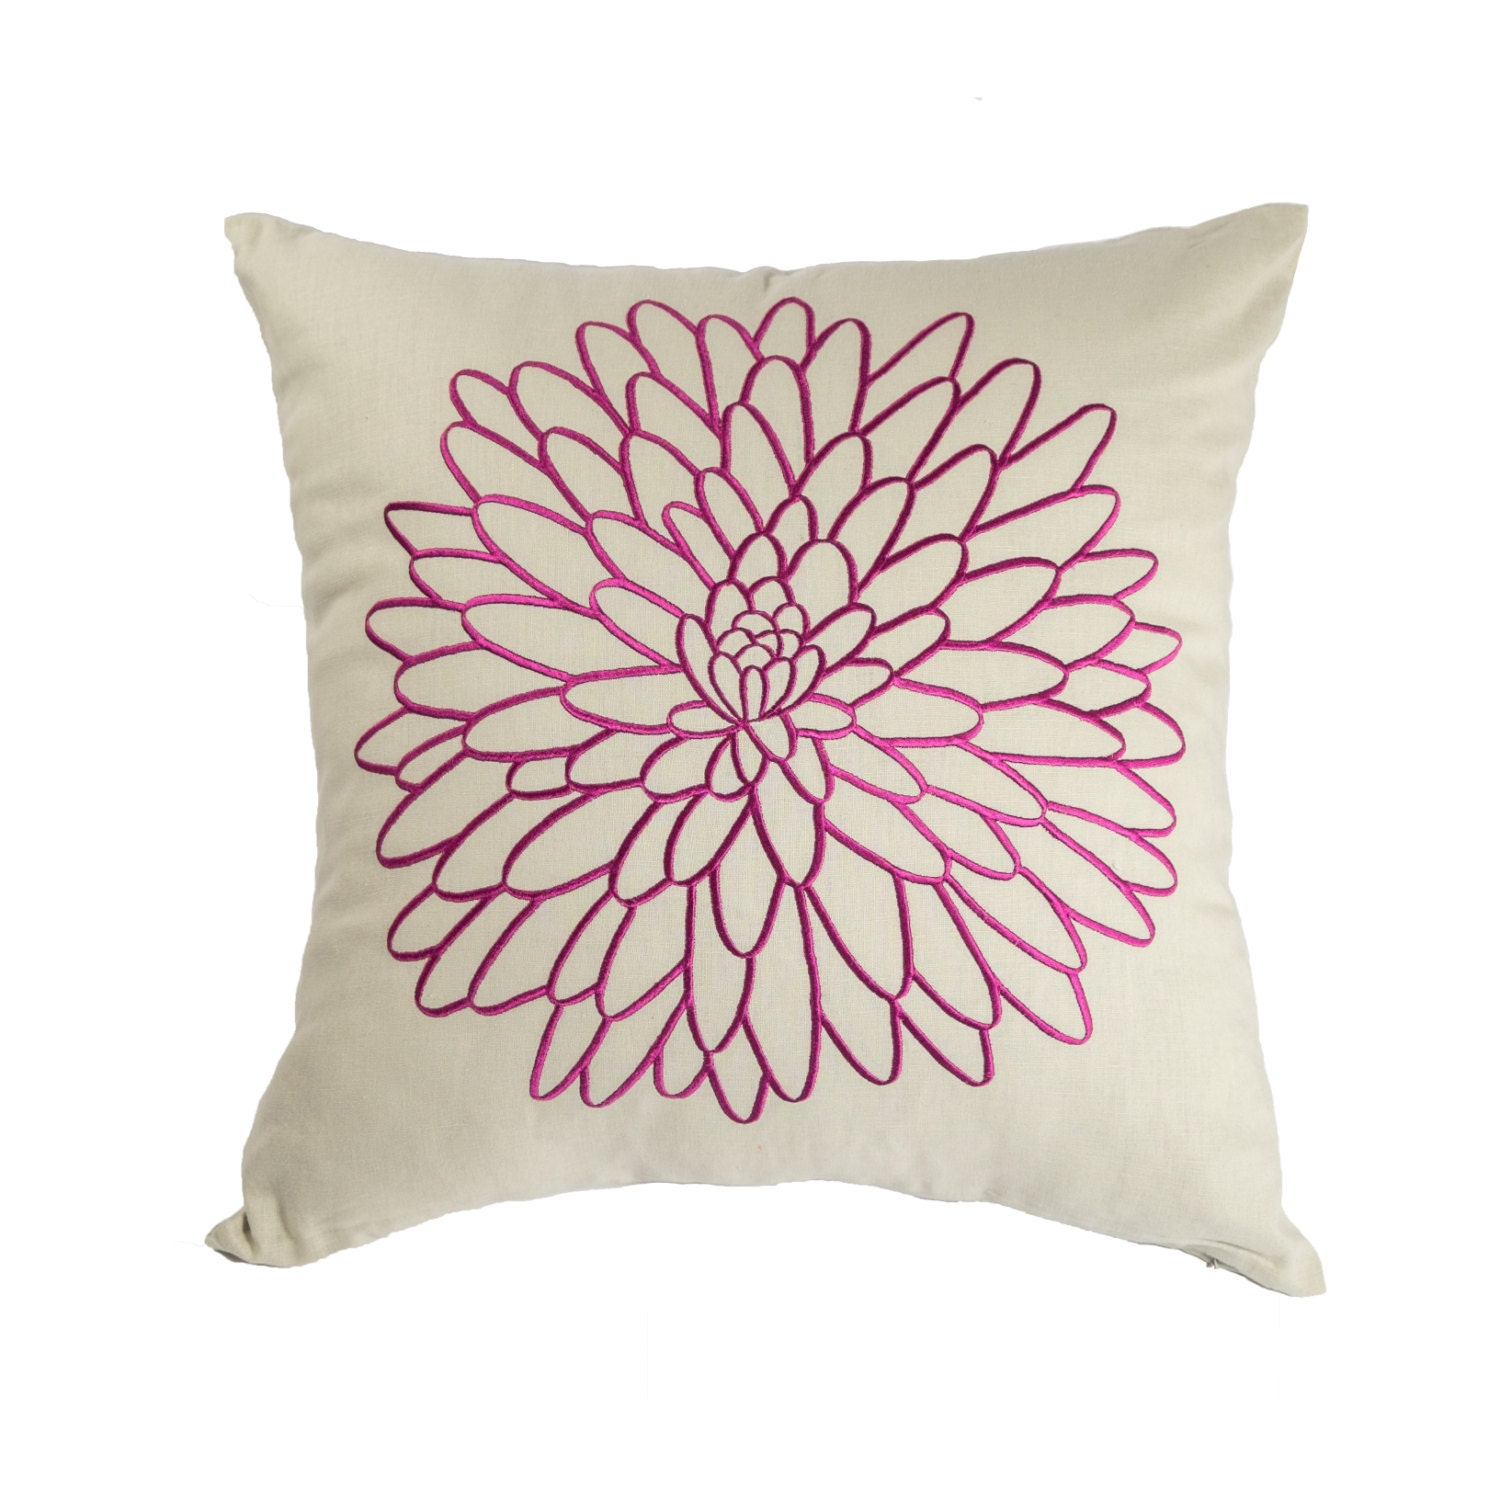 Decorative Pillows Flowers : Purple Floral Throw Pillow Cover Embroidered Pillow Oatmeal